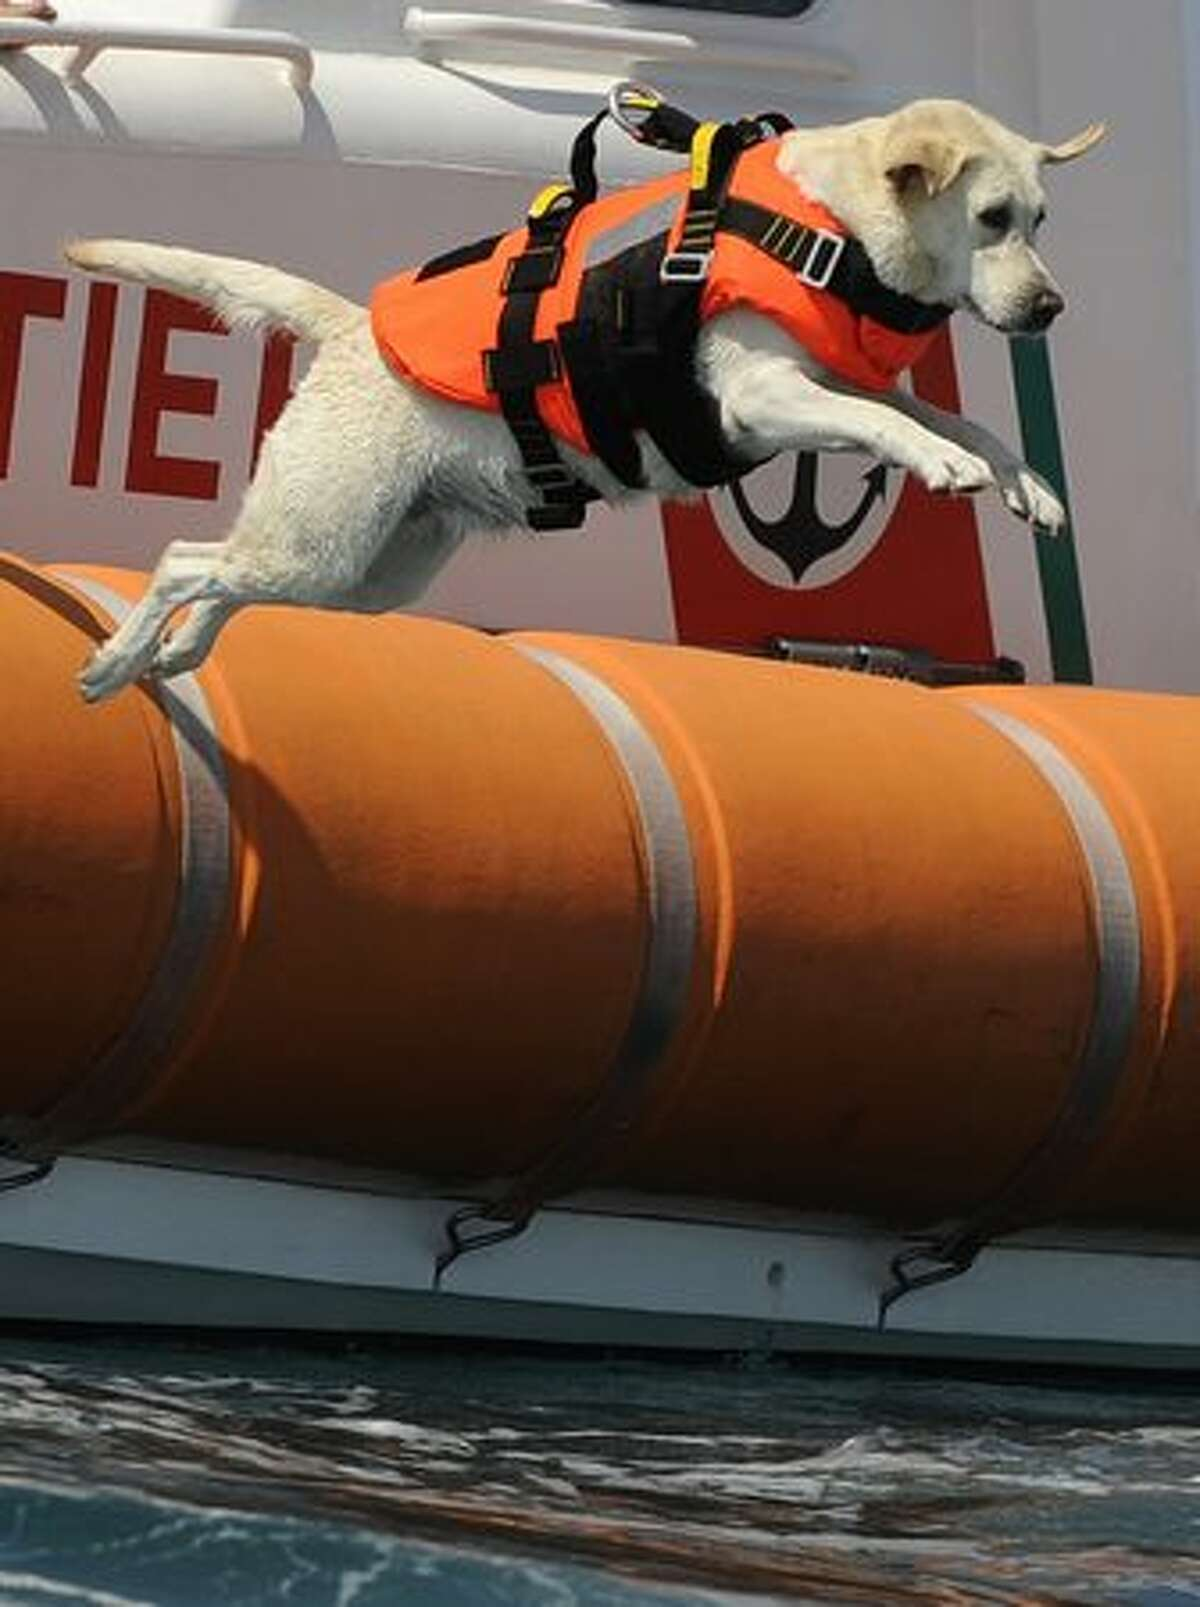 A labrador dog plunges into the sea during a patrol at Riva dei Tarquini in the Tyrrhenian Sea about 100kms north of Rome. This summer, Italy discovered a special squad of rescue workers: some 300 dogs ready to help save lives on dozens of Italian beaches.